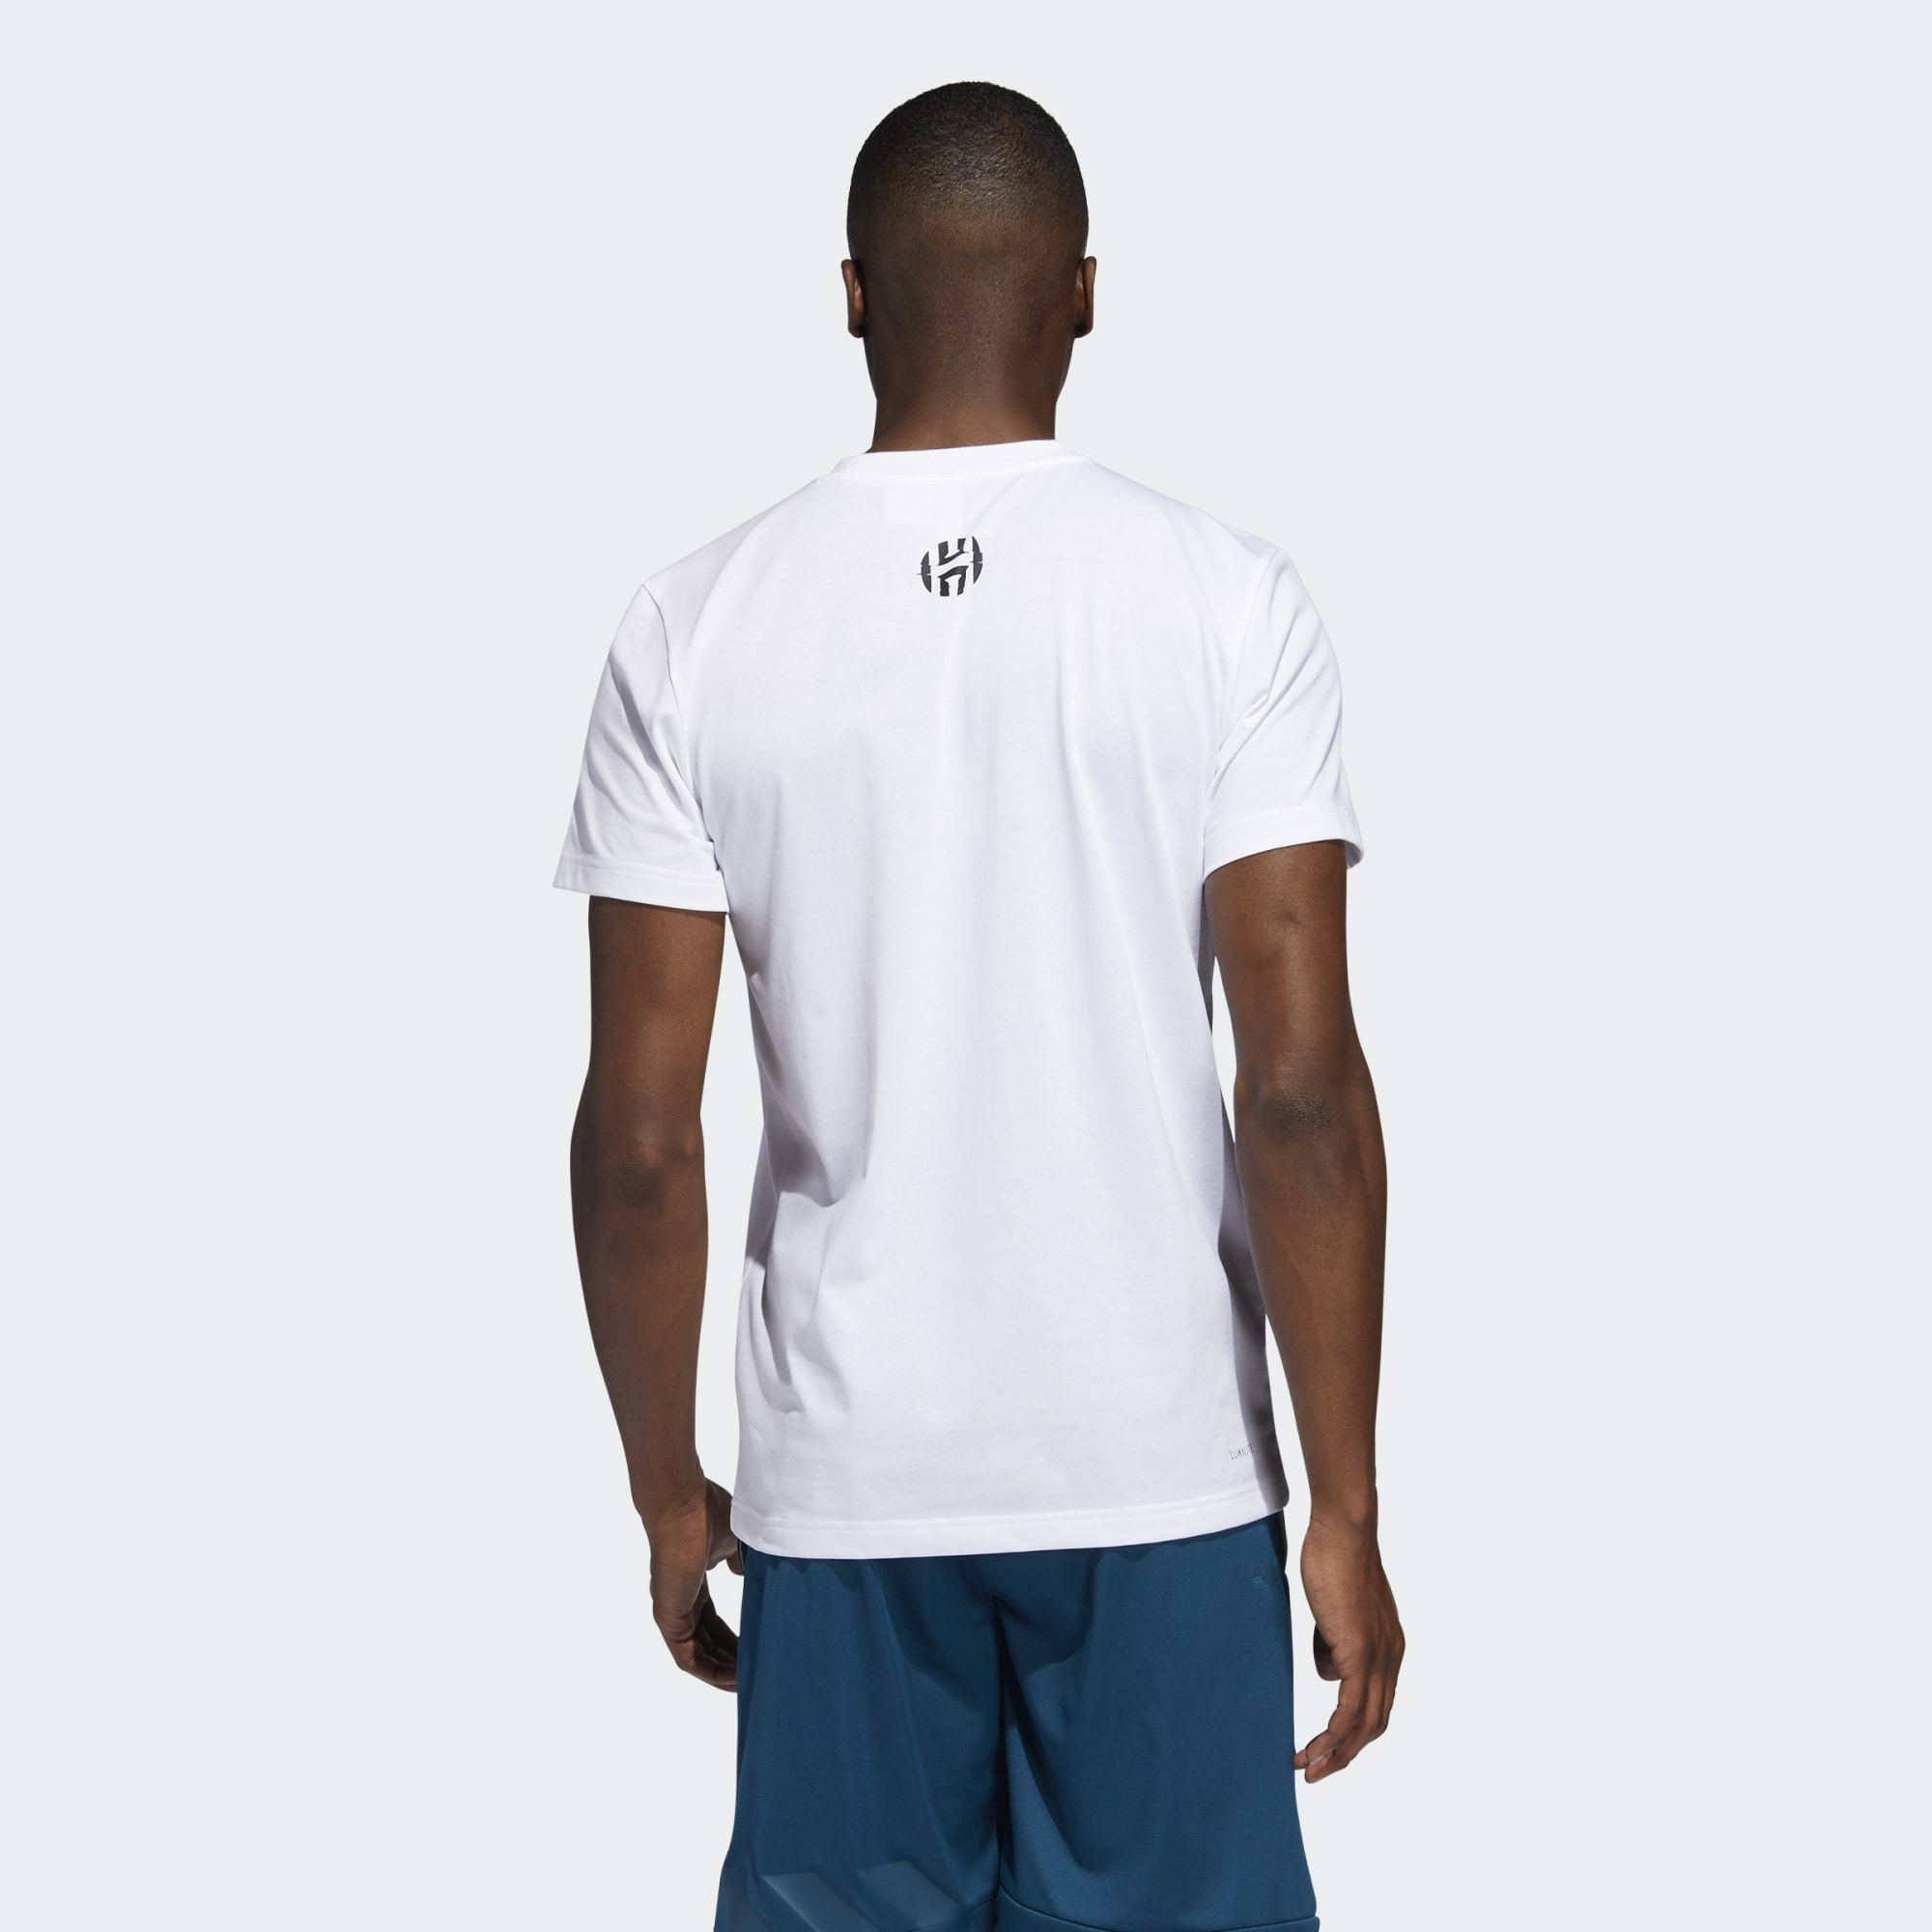 Adidas Harden V4 Art Tee - White SP-ApparelTees-Mens Adidas